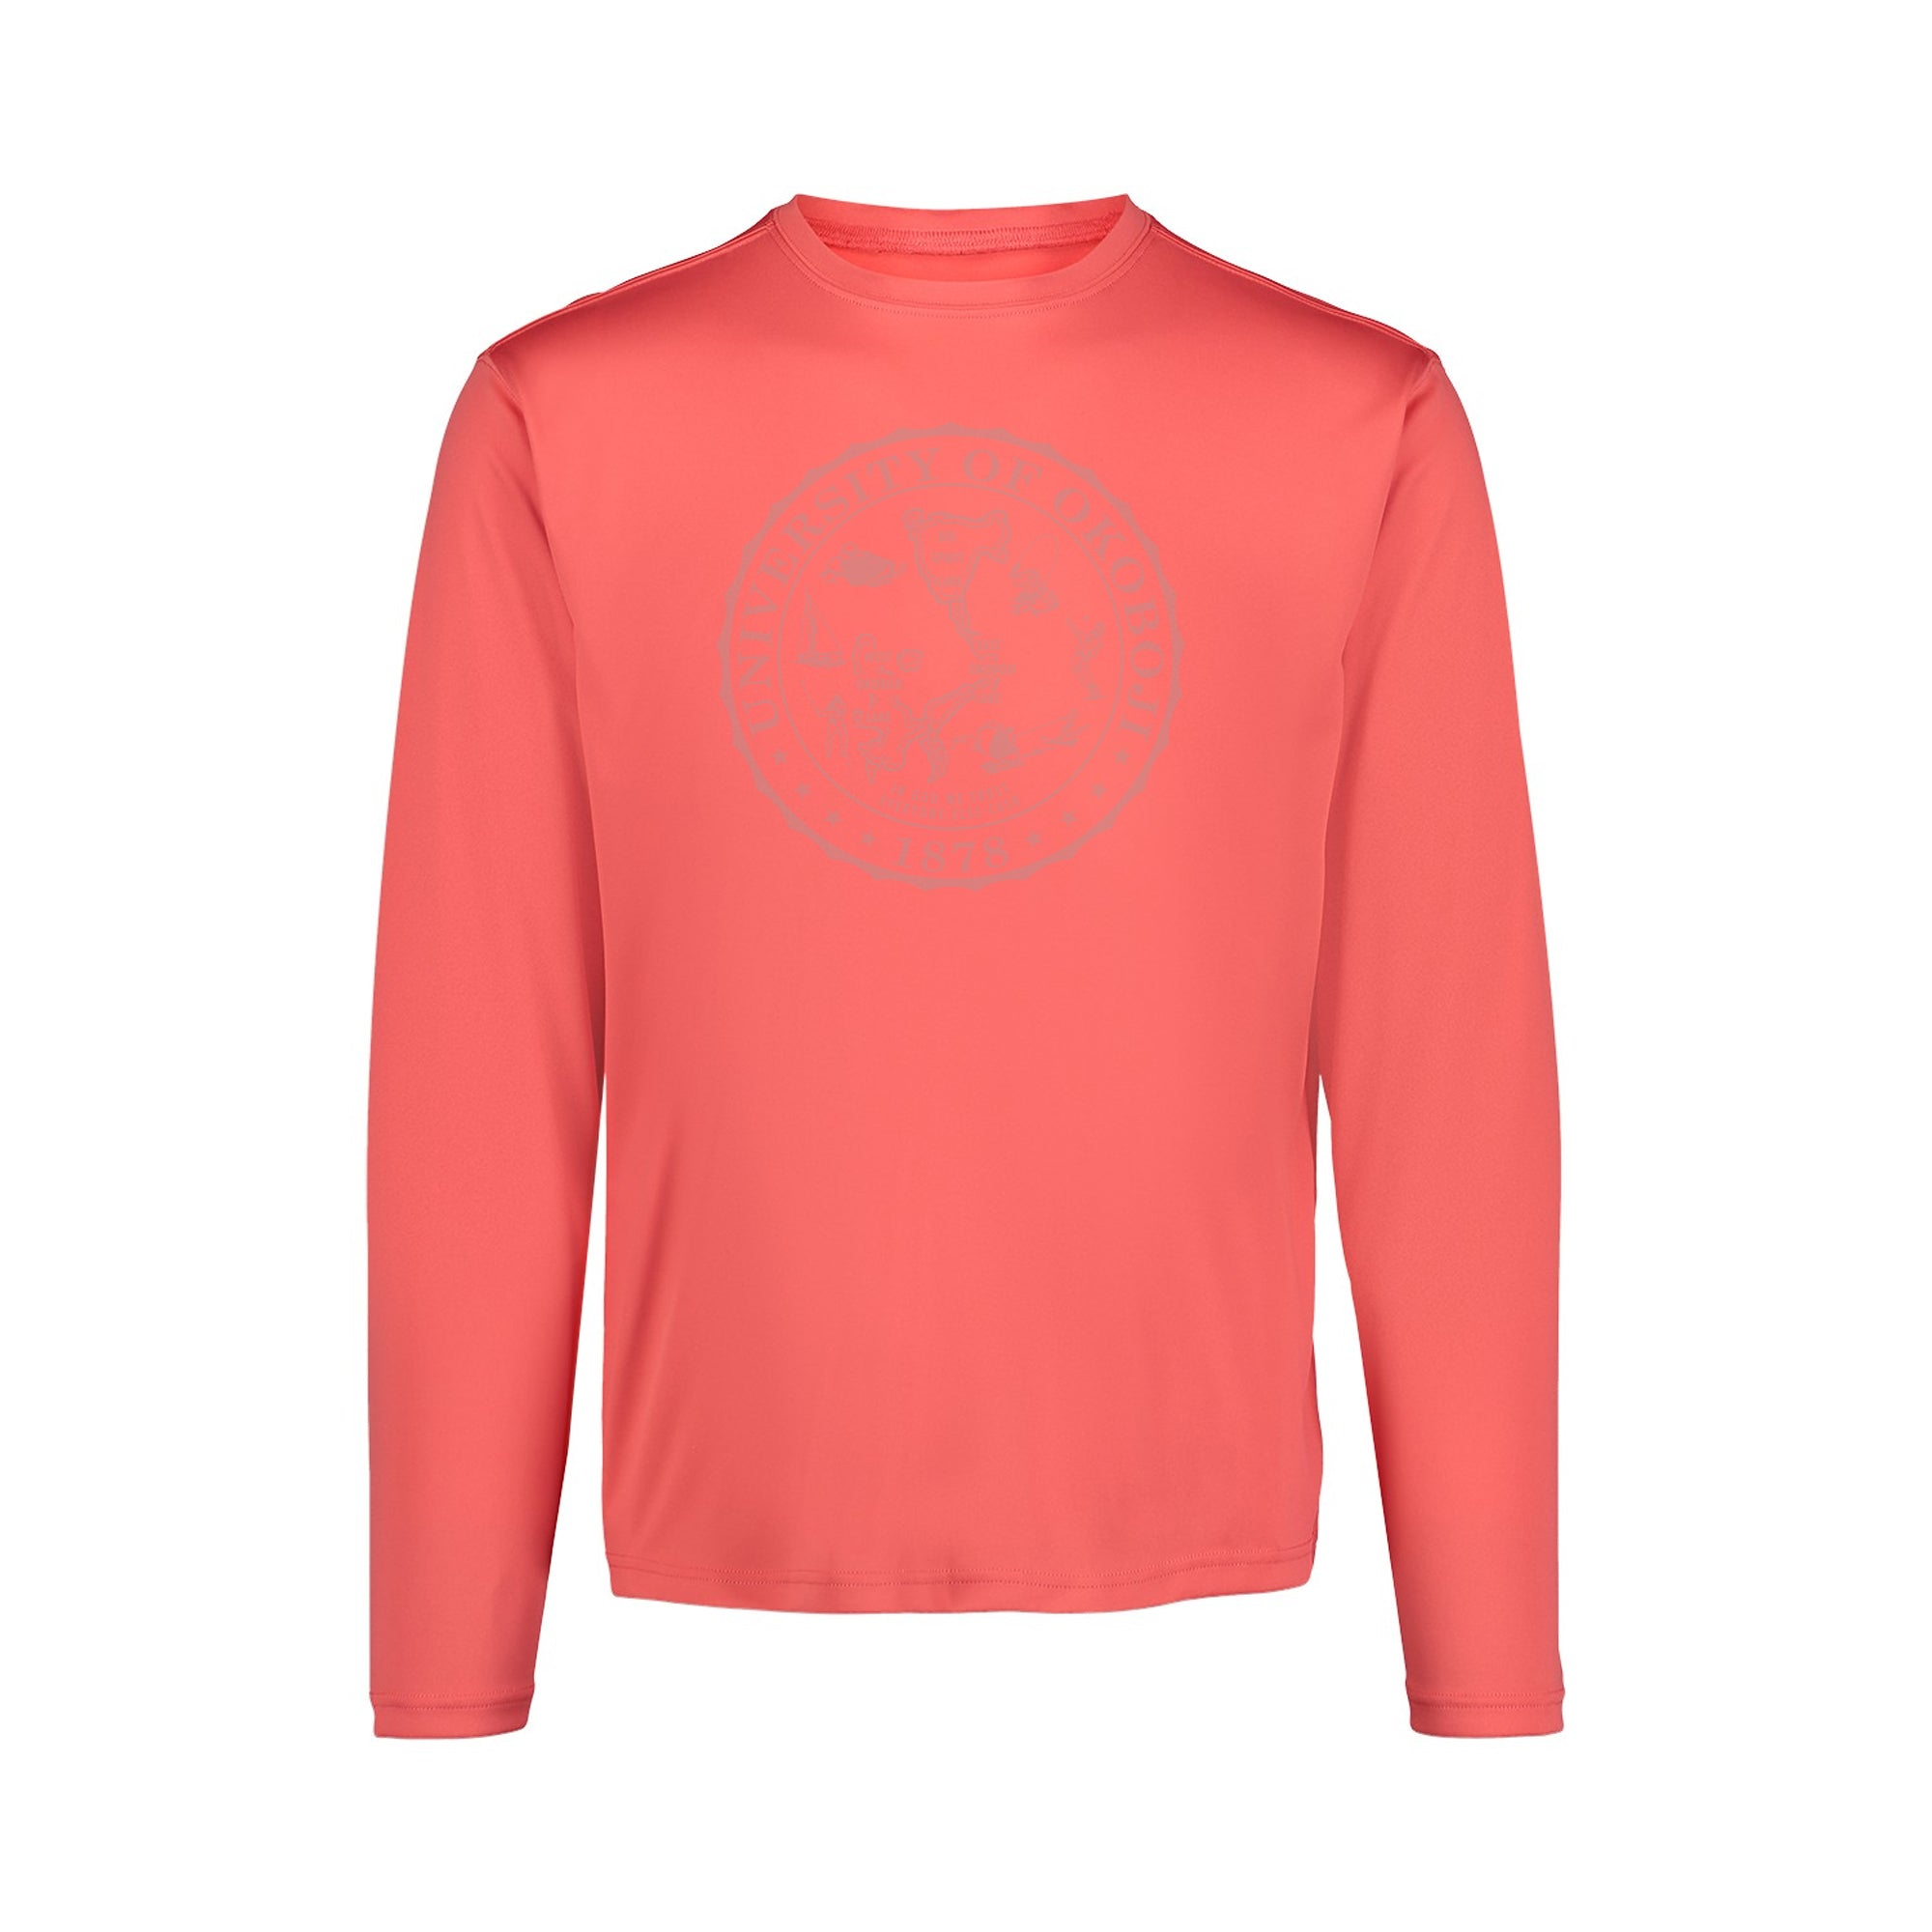 University of Okoboji Sunproof™ Long Sleeve Shirt - Watermelon (UPF 50)